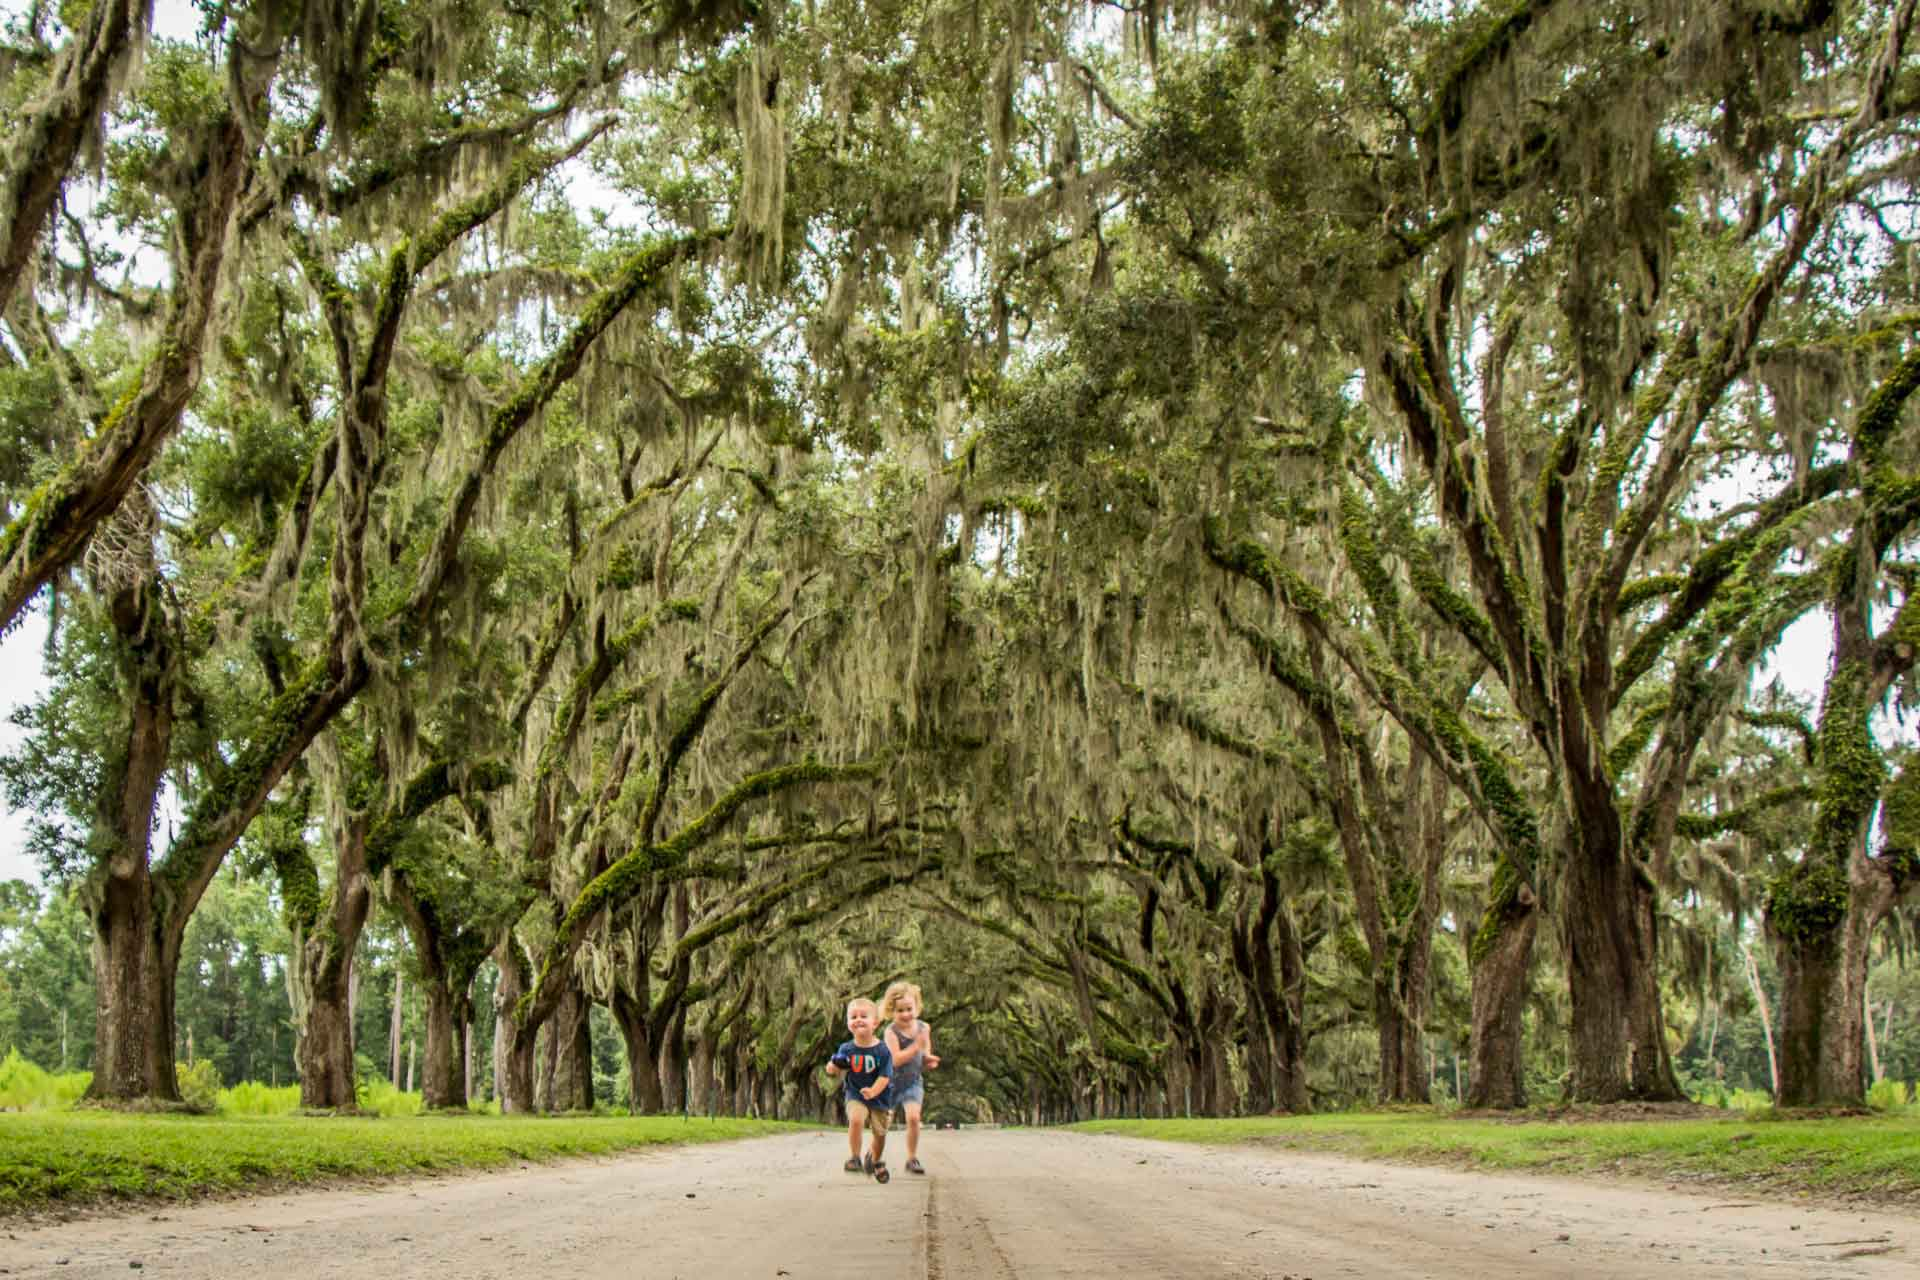 Family Can Travel - 2 Days in Savannah with Kids - Wormsloe Historic Site - Kids having fun under Oaks and Spanish Moss